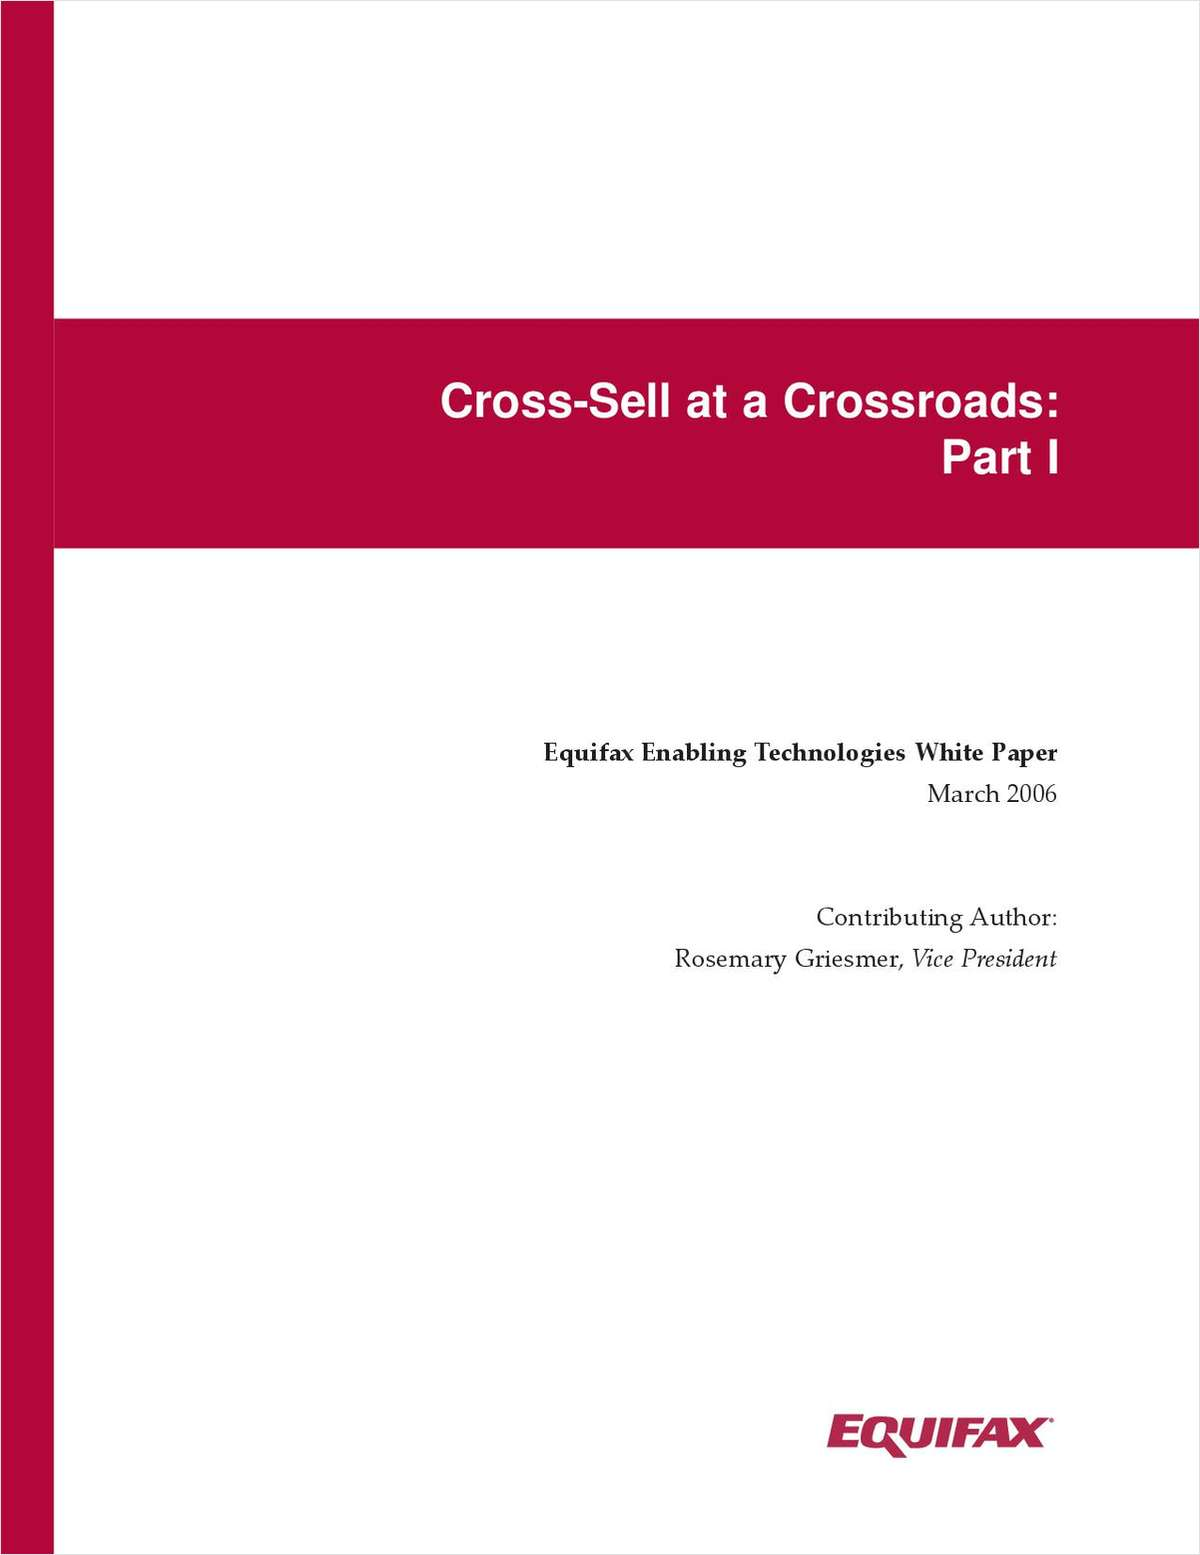 Cross-Sell at a Crossroads: Part I